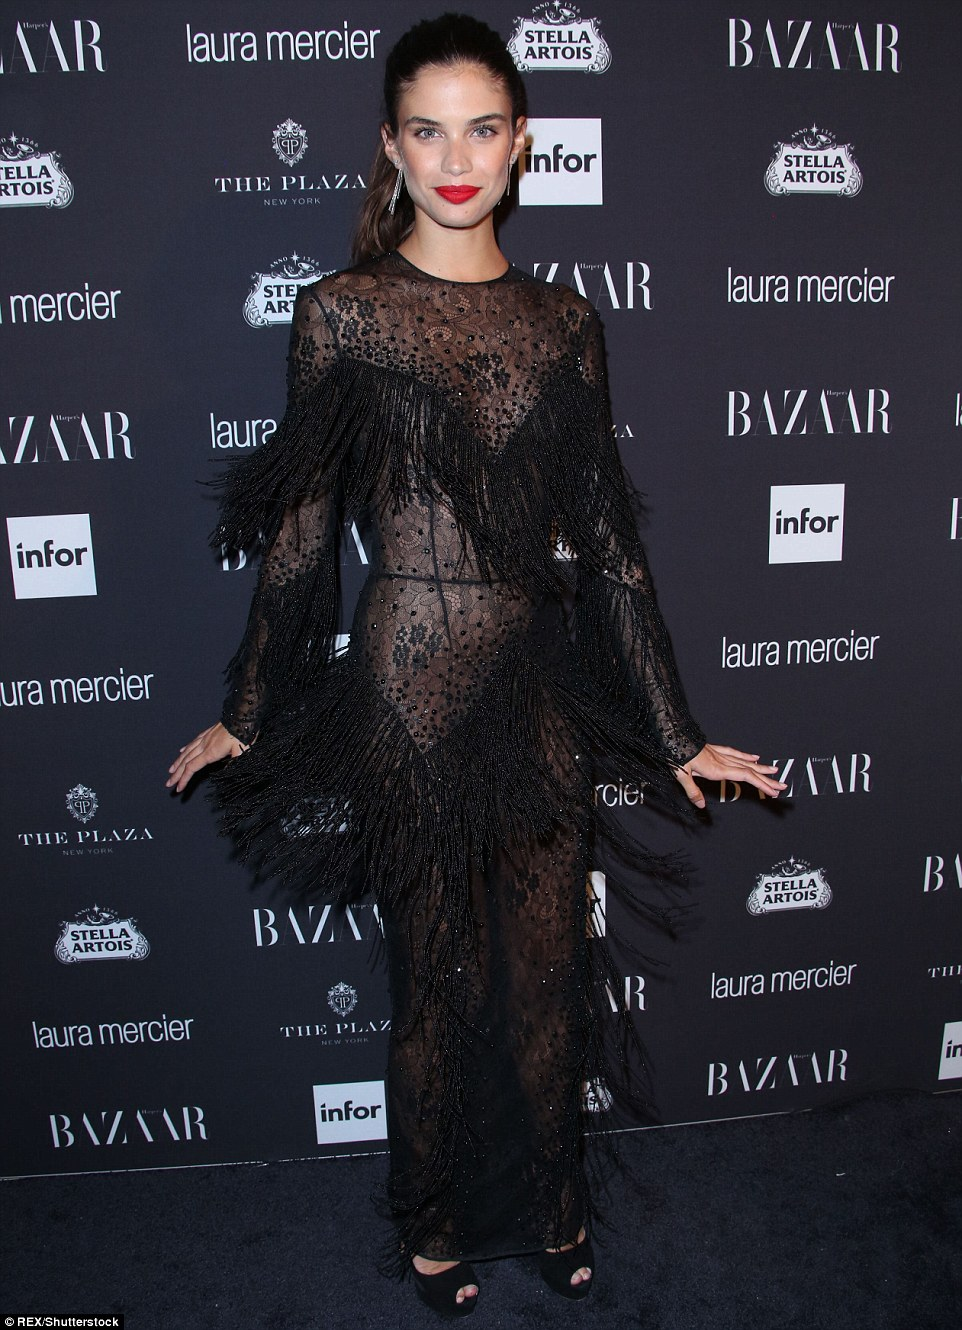 Having a blast: Sara Sampaio wore a black fringed dress with sheer elements, adding bold red lipstick